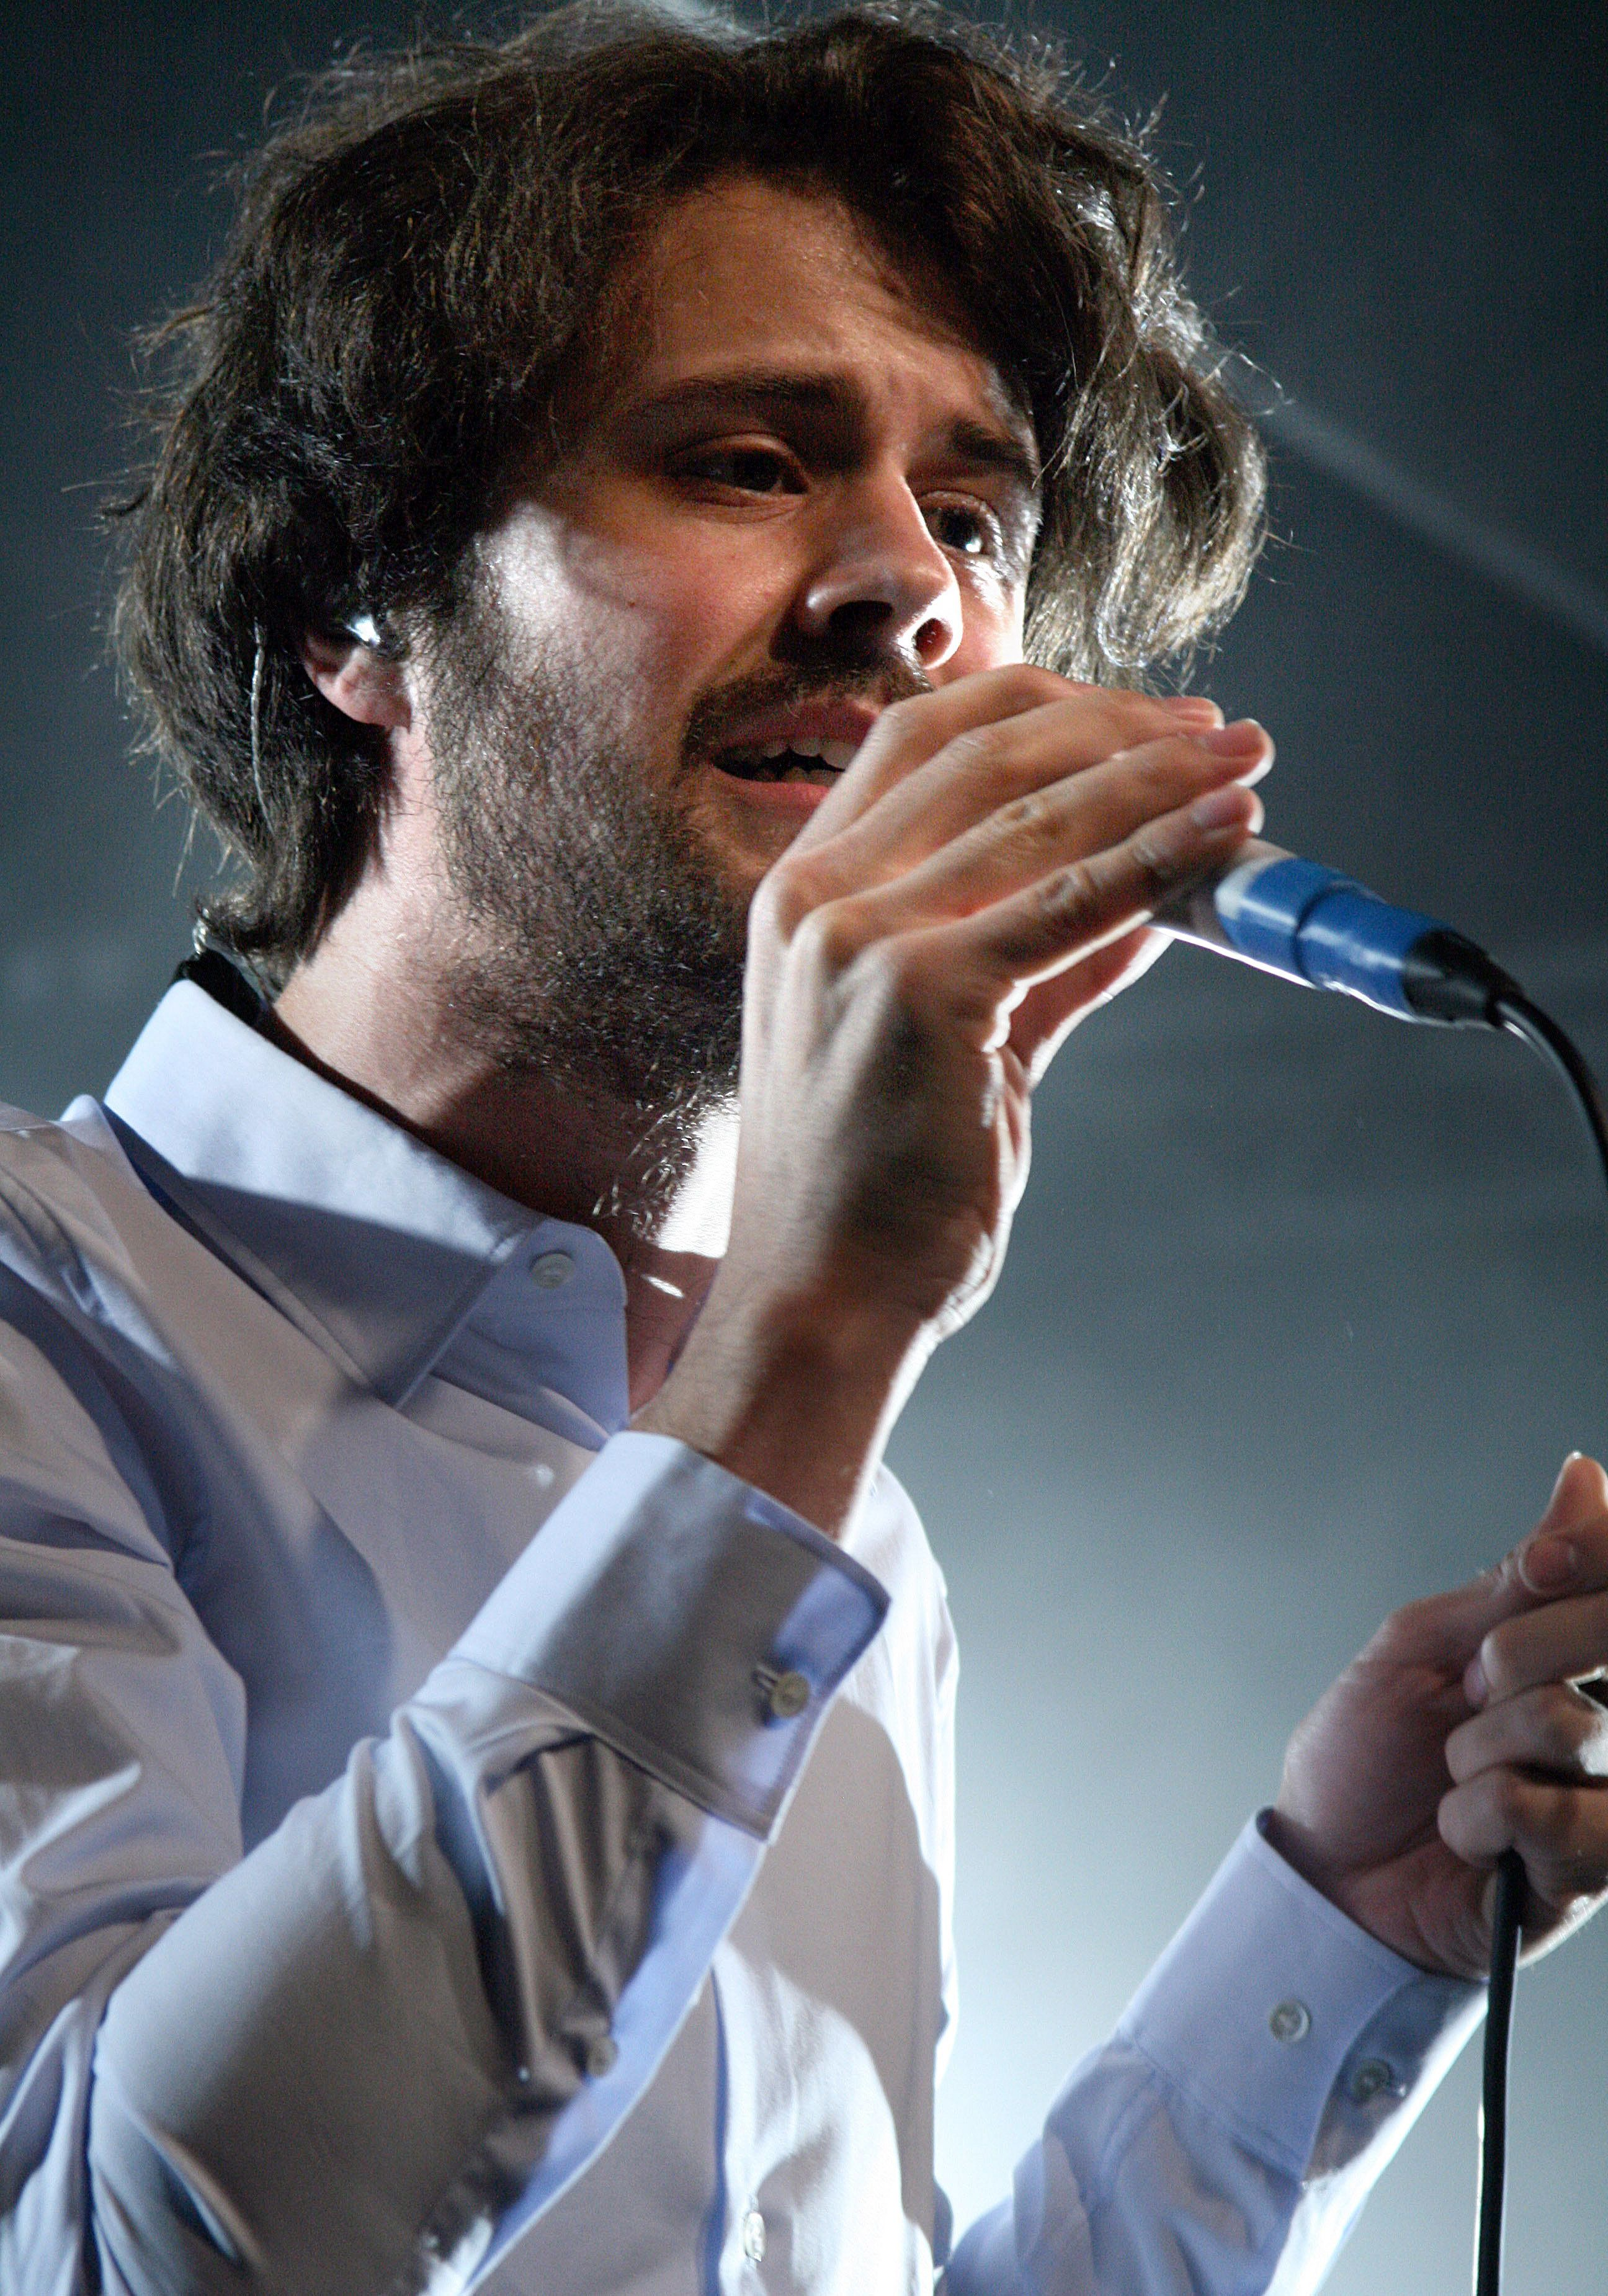 Michael Angelakos, lead singer of Passion Pit performs on stage at Rock City in Nottingham.